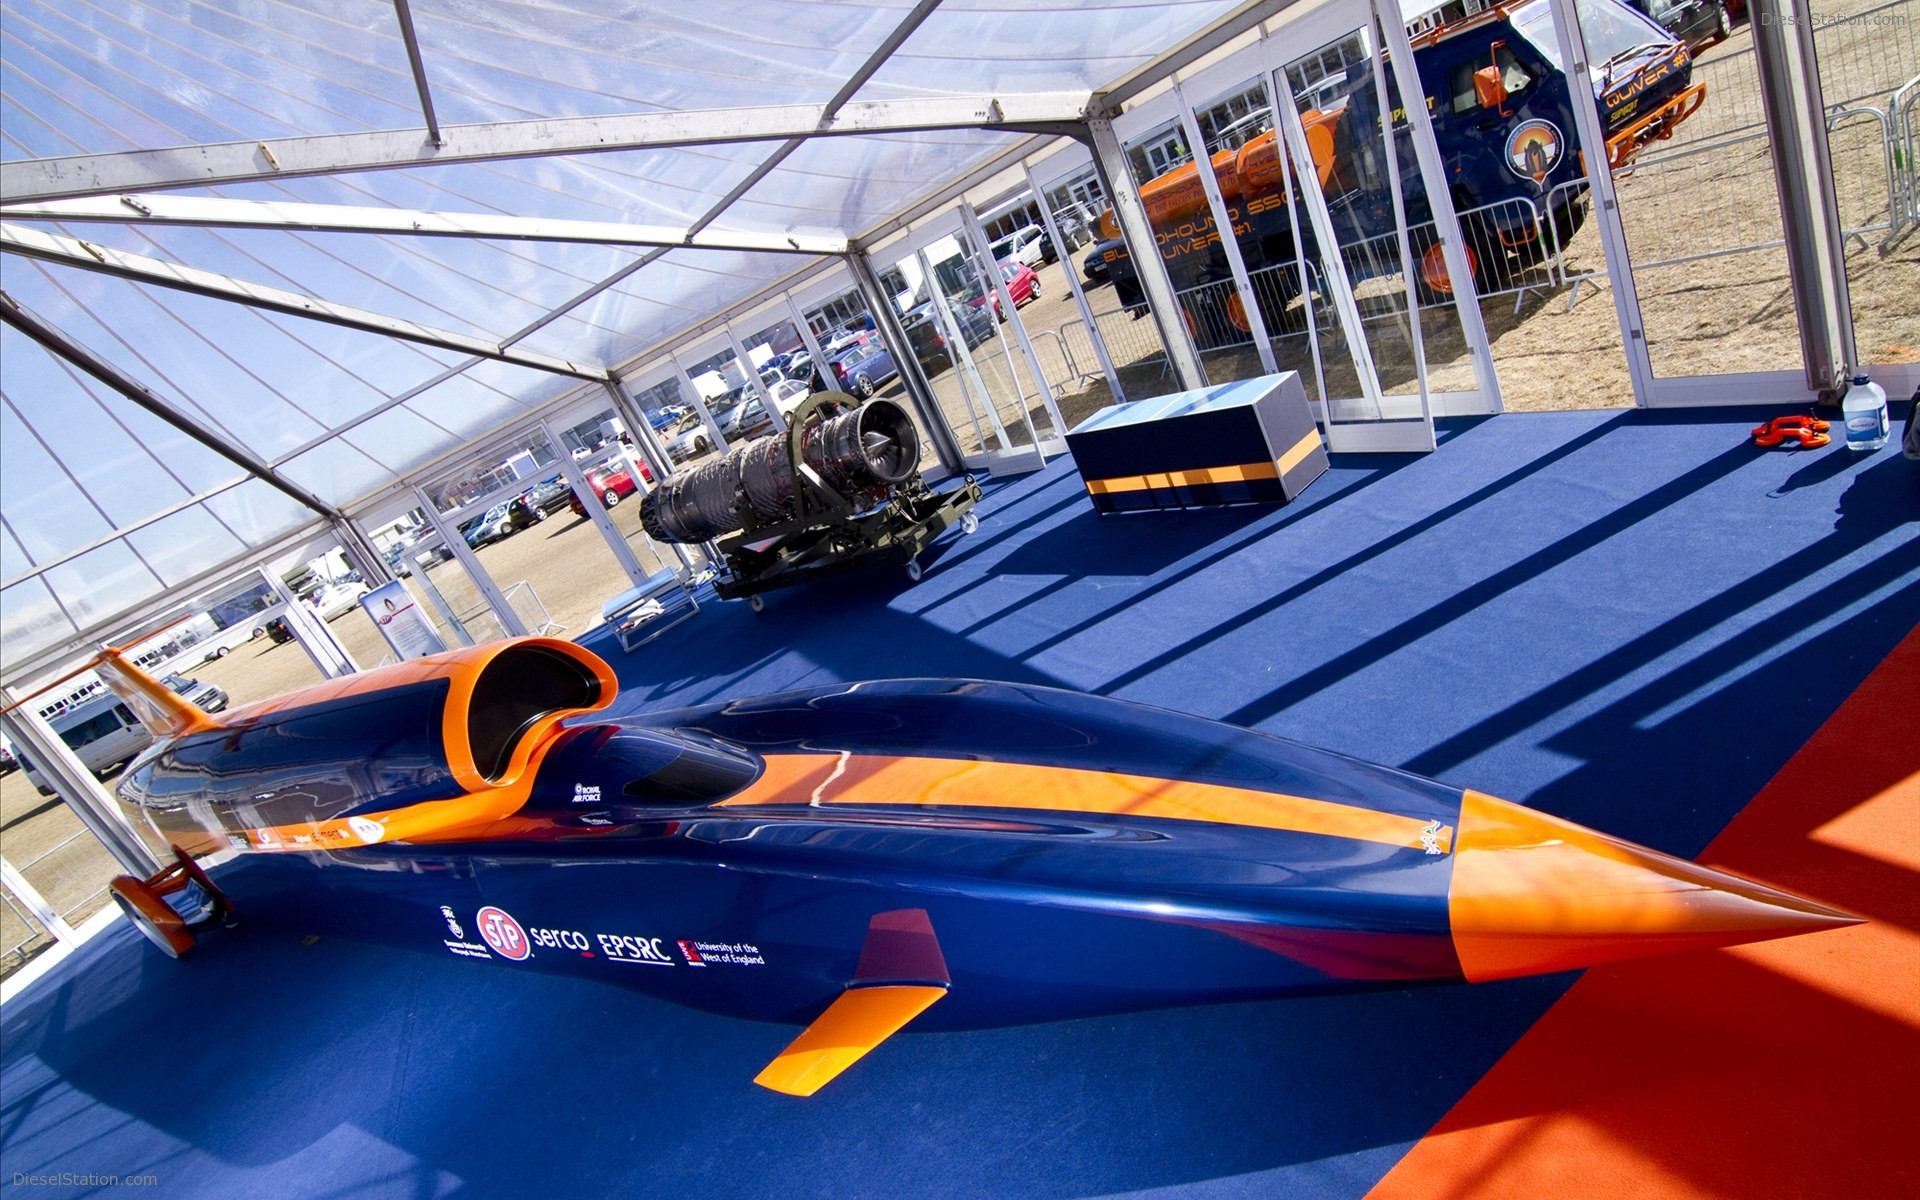 Bloodhound-SSC-Car-will-run-at-a-speed-of-more-than-1000-miles-per-hour